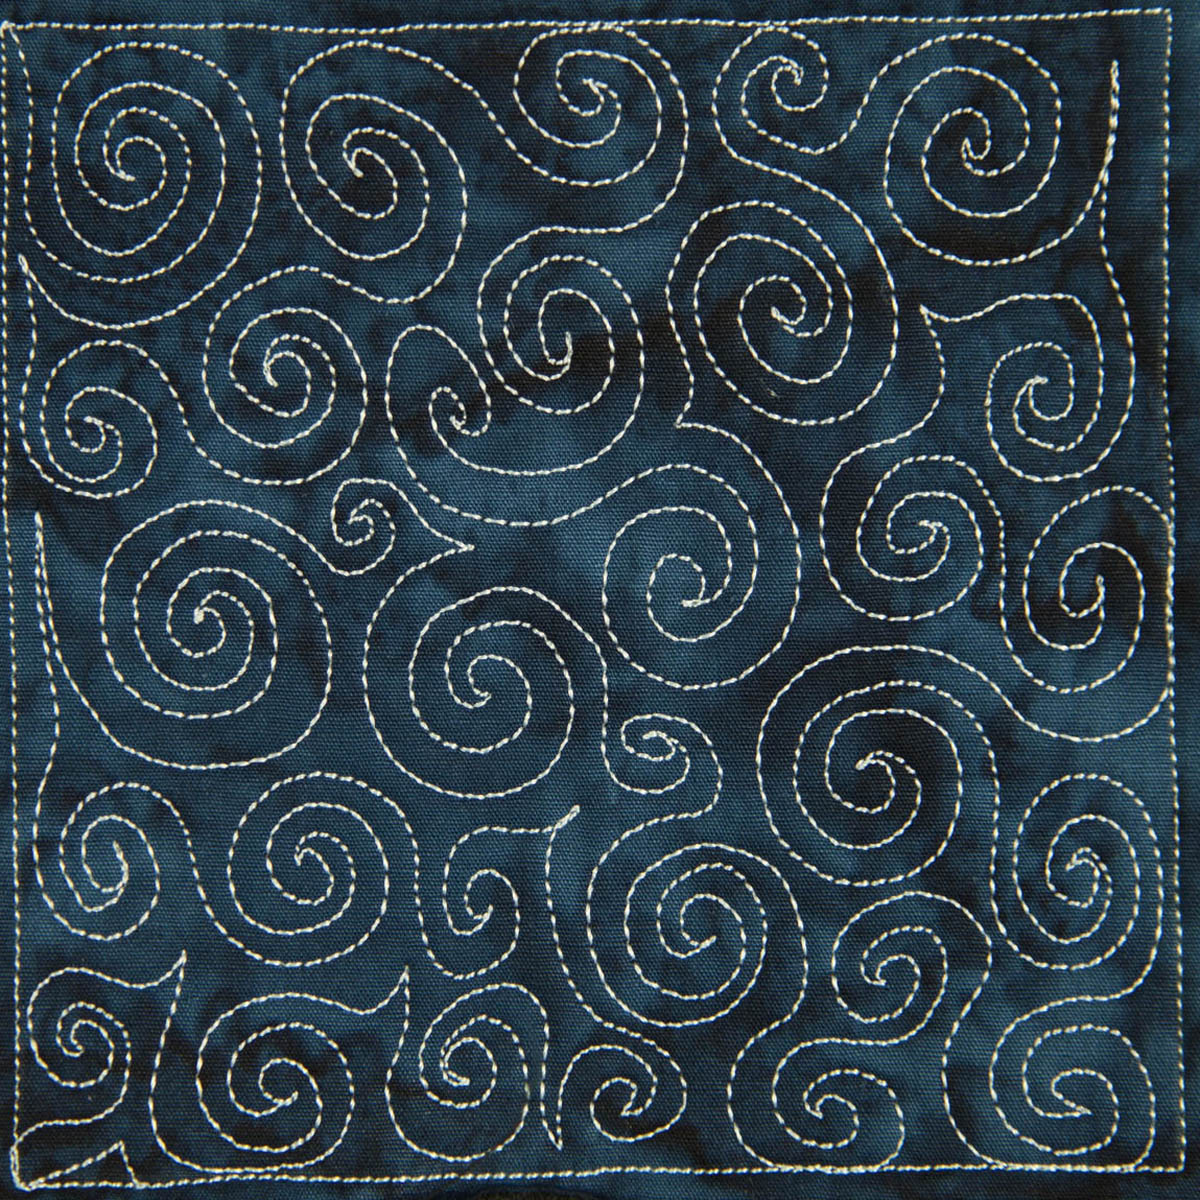 The free motion quilting project day 5 basic spiral for Quilting templates free